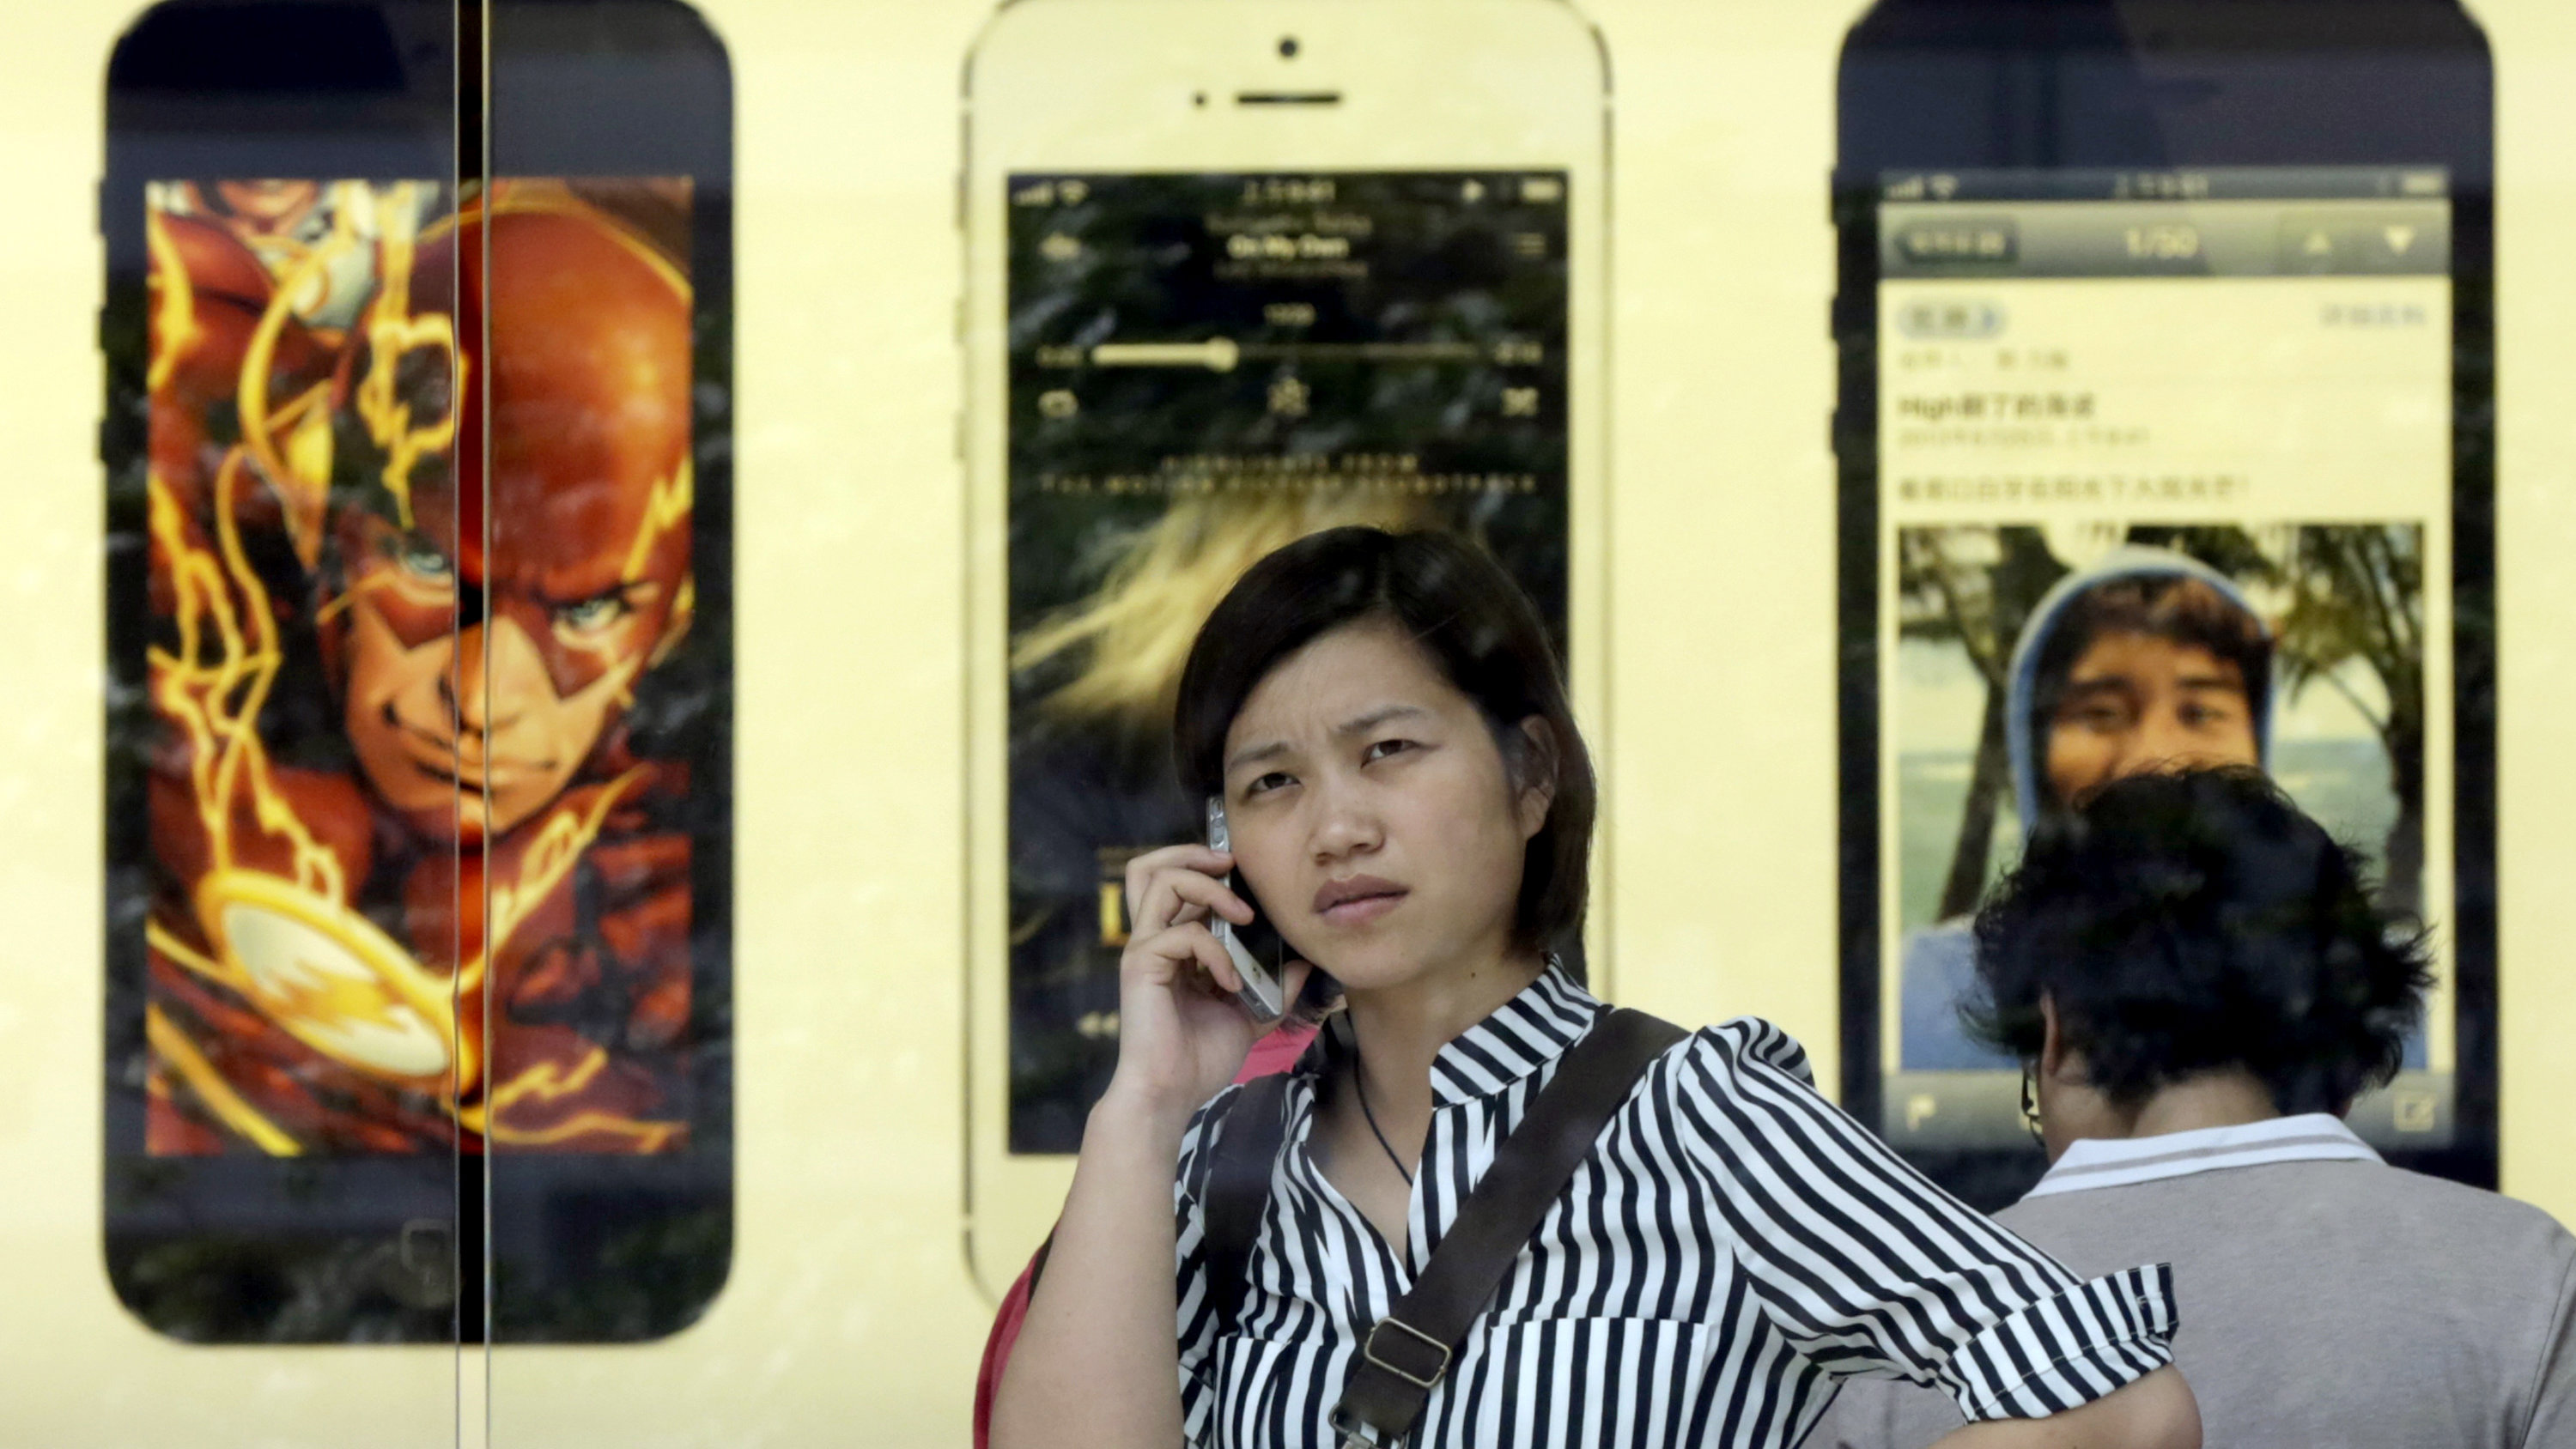 A woman talks on her iPhone at the Apple Store in Shanghai, China, Thursday, Sept. 12, 2013. (AP Photo/Eugene Hoshiko)